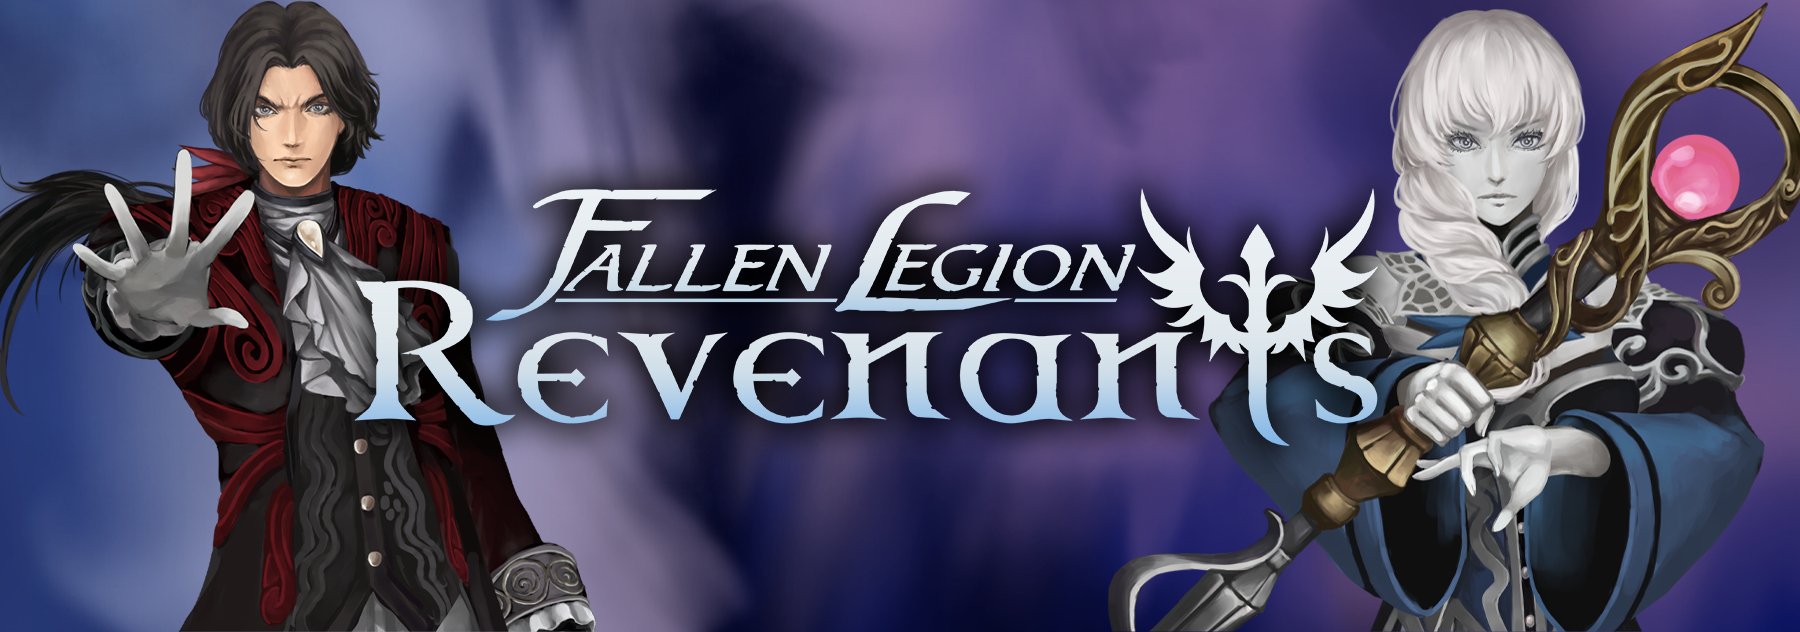 Fallen Legion Revenants statistics facts